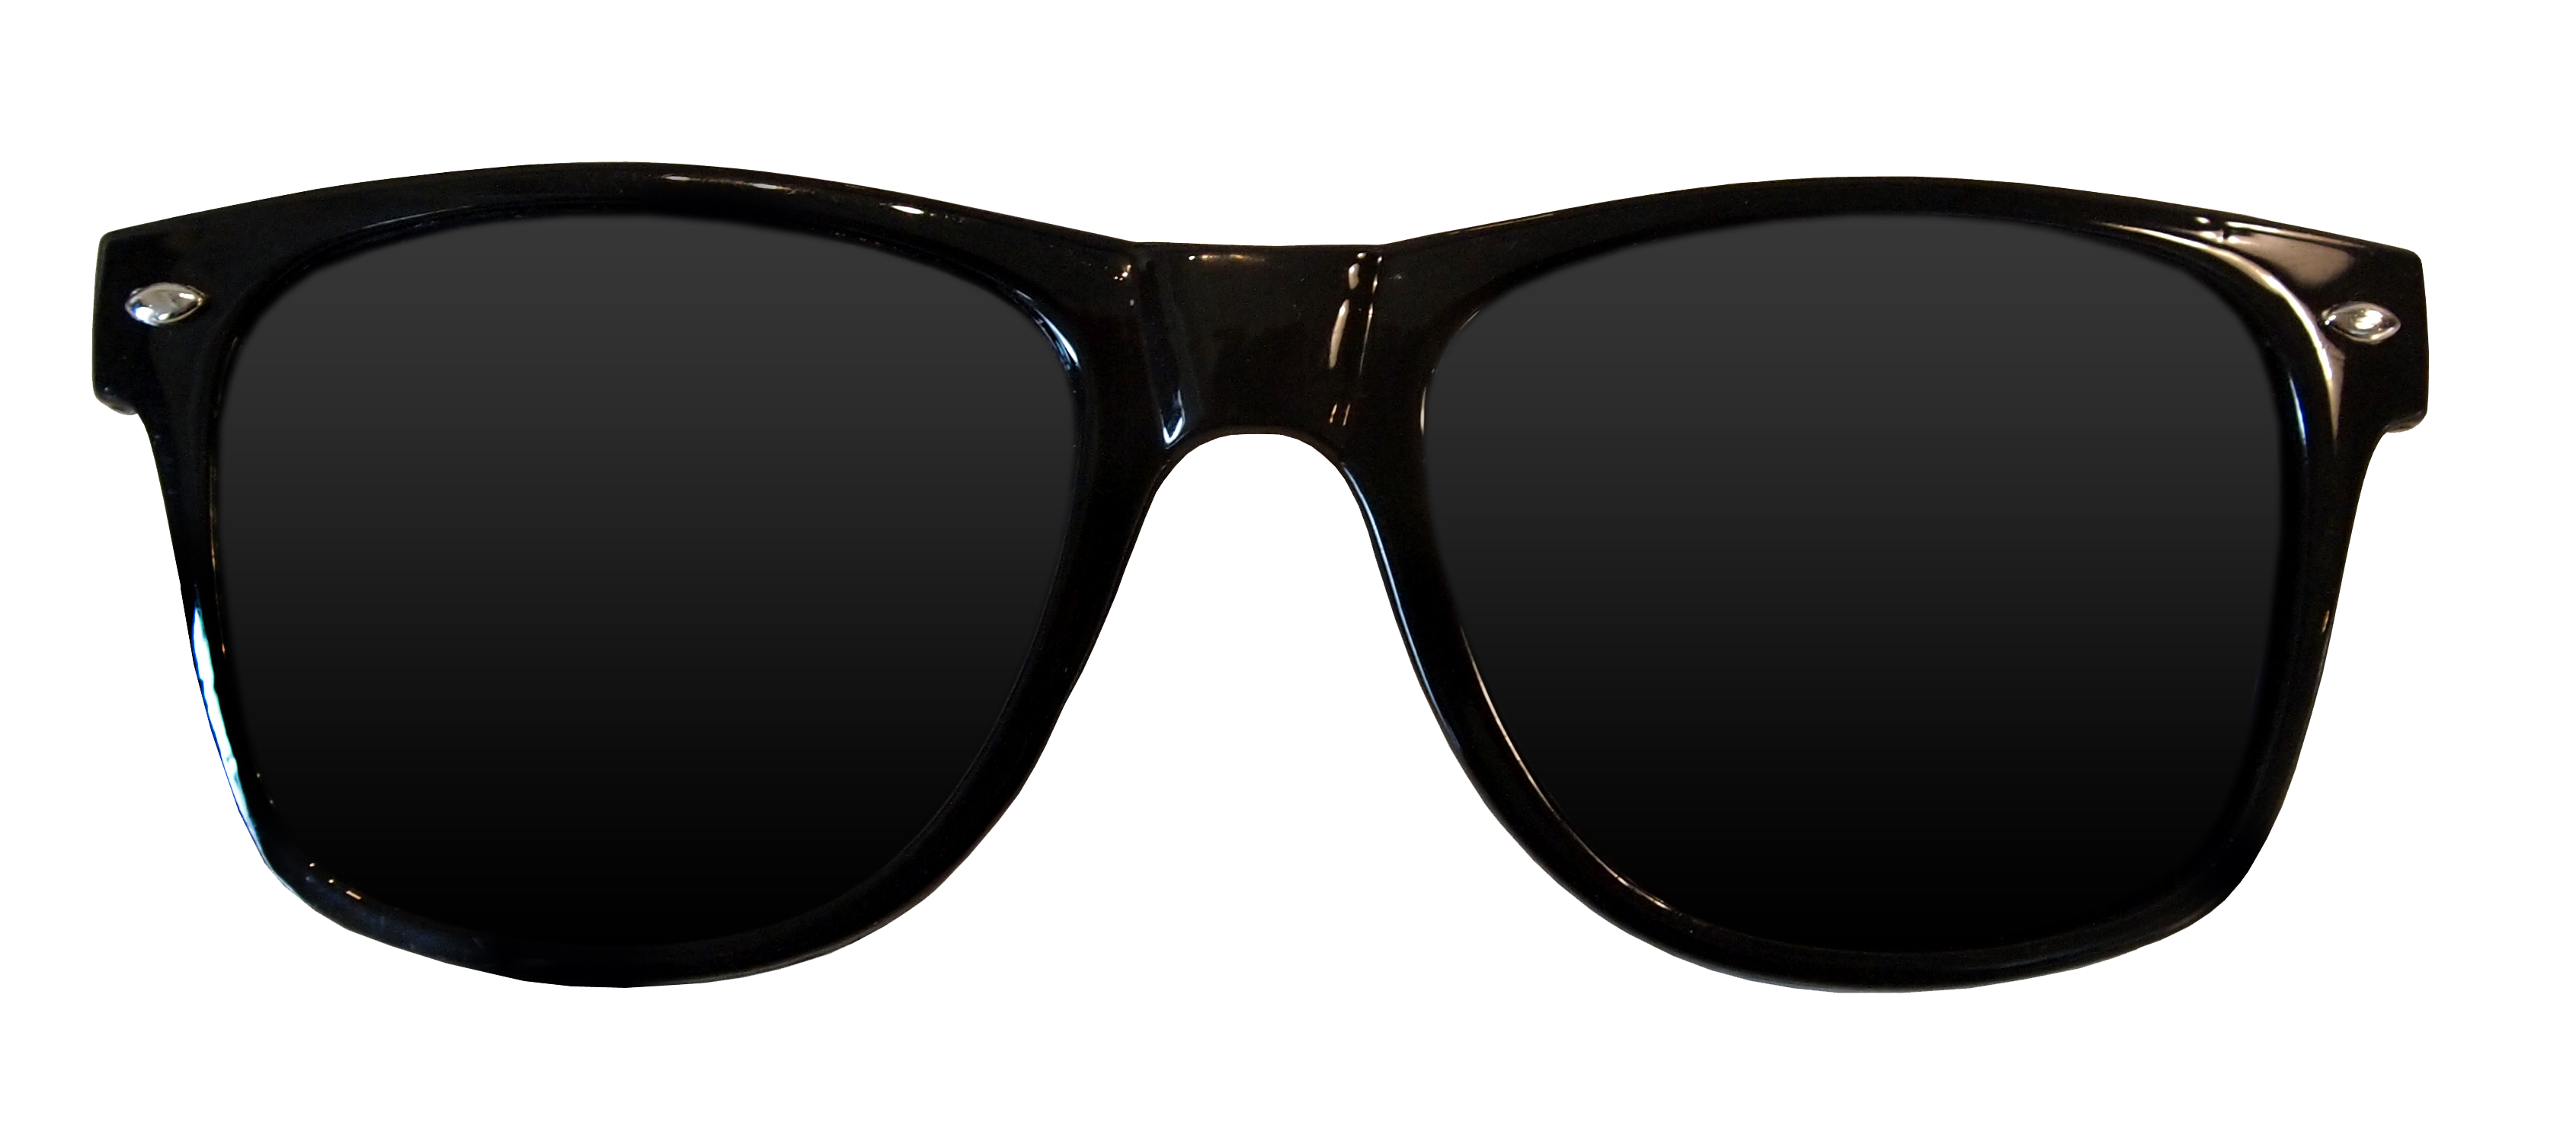 Super, Sport, Sunglasses Png Transparent